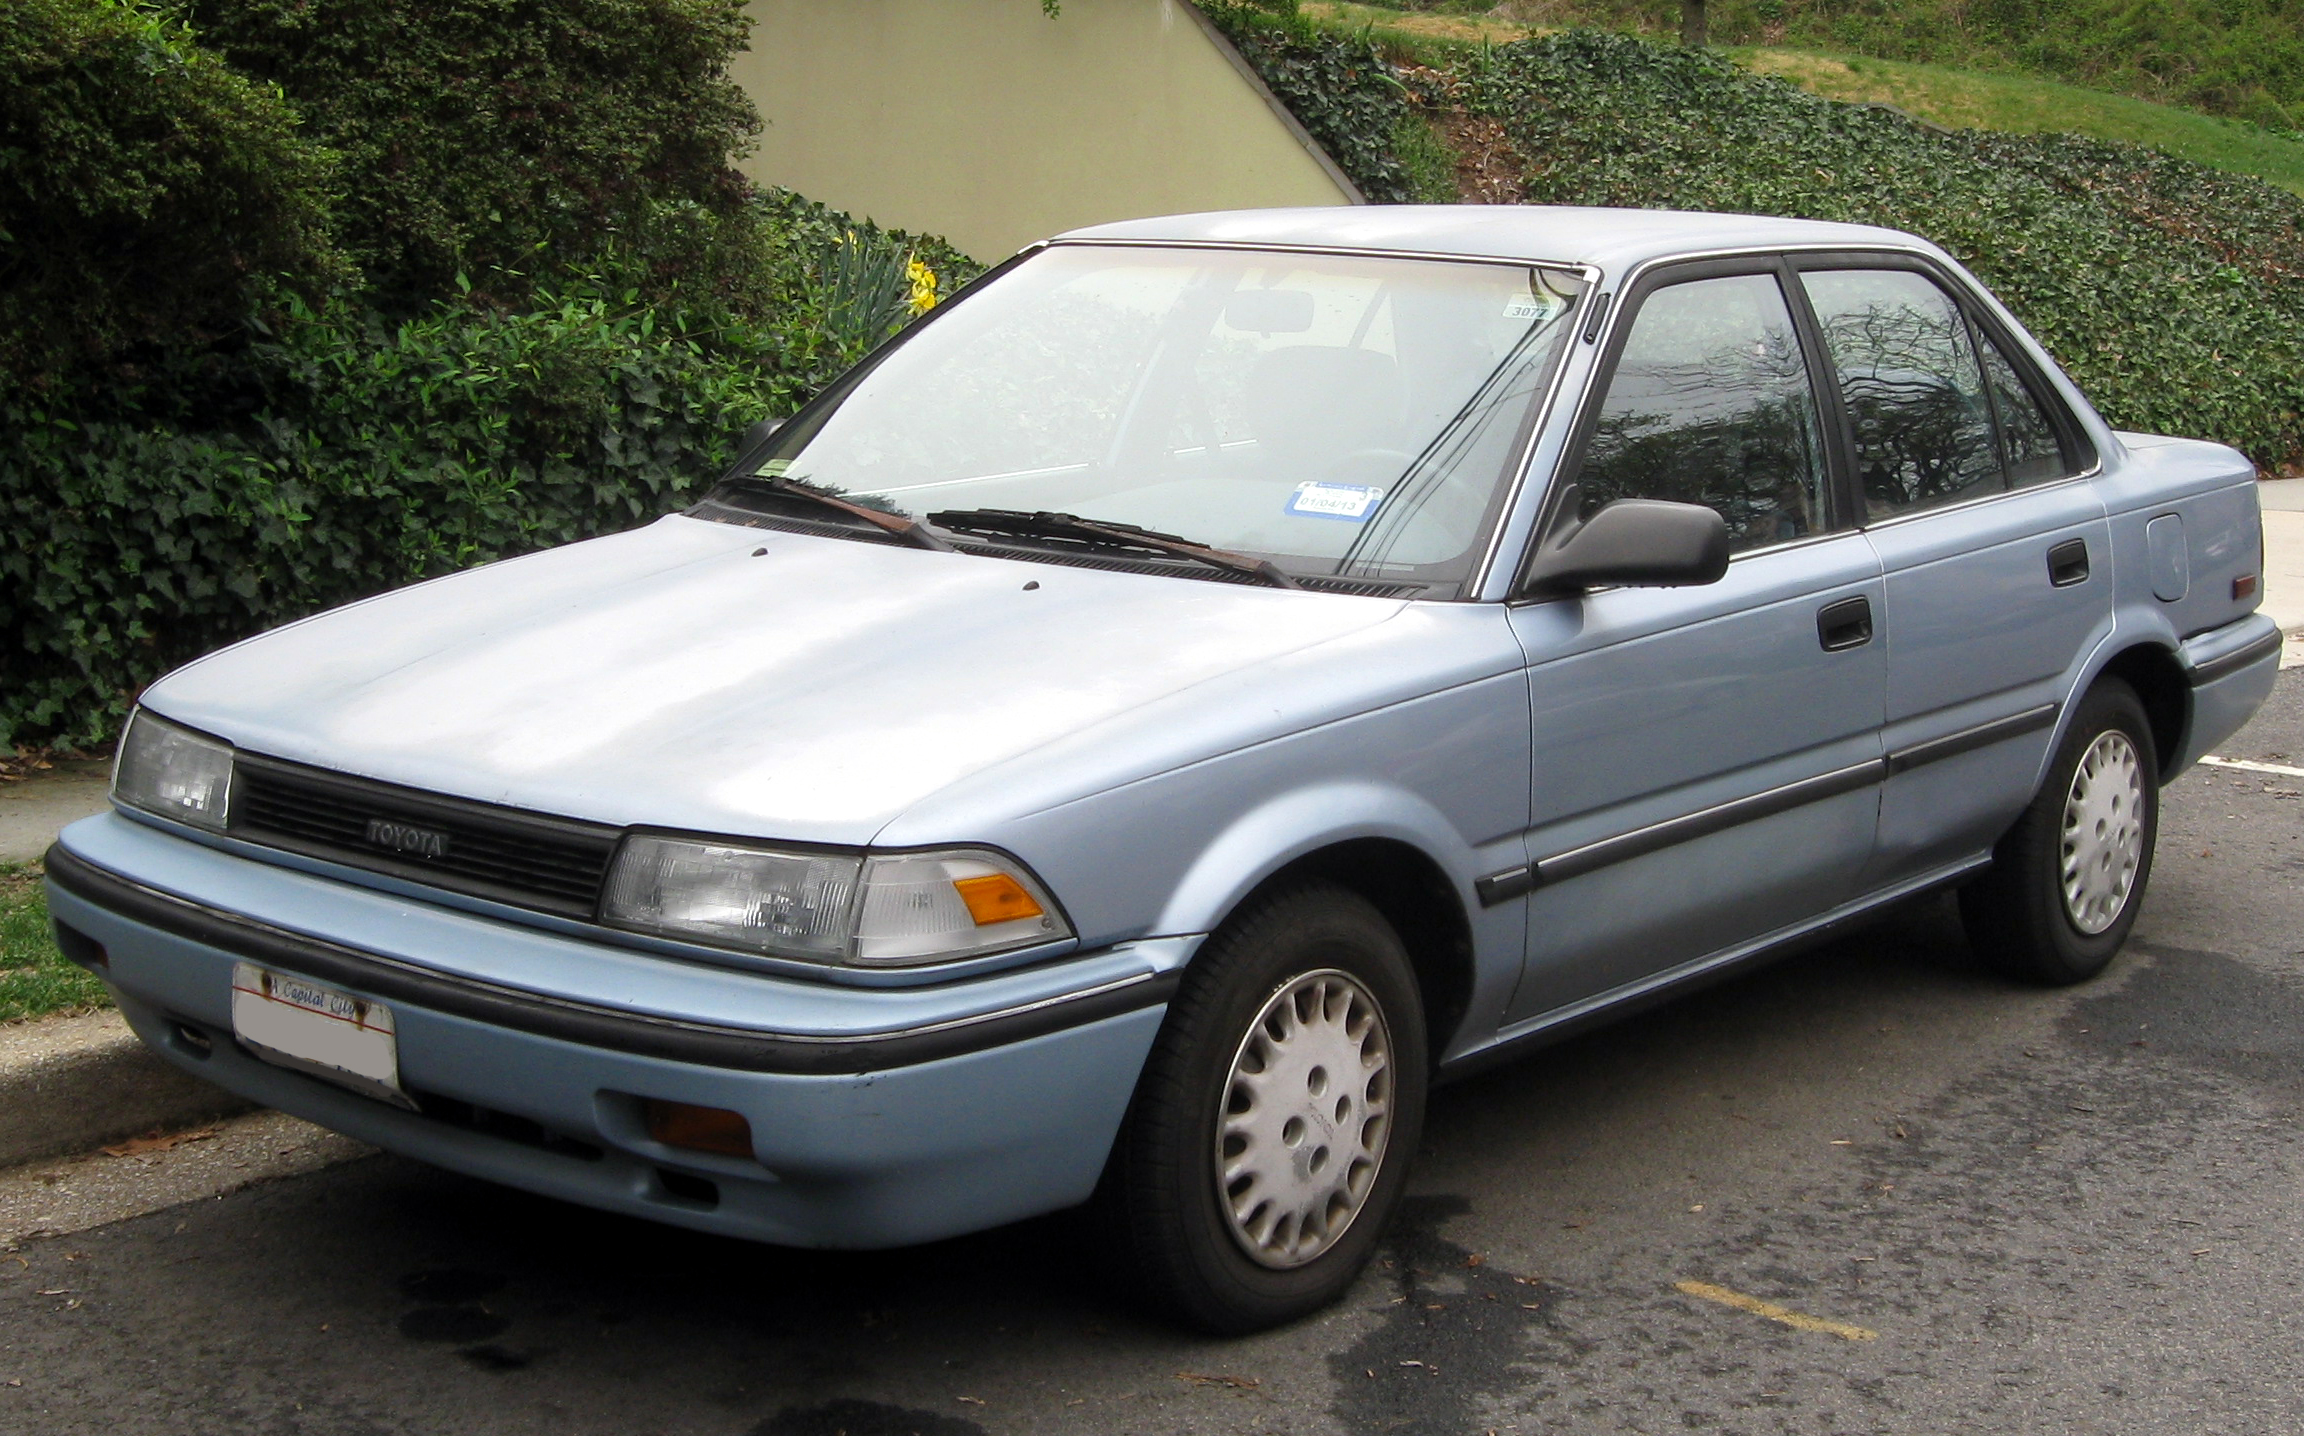 1992 toyota corolla e9 pictures information and specs. Black Bedroom Furniture Sets. Home Design Ideas